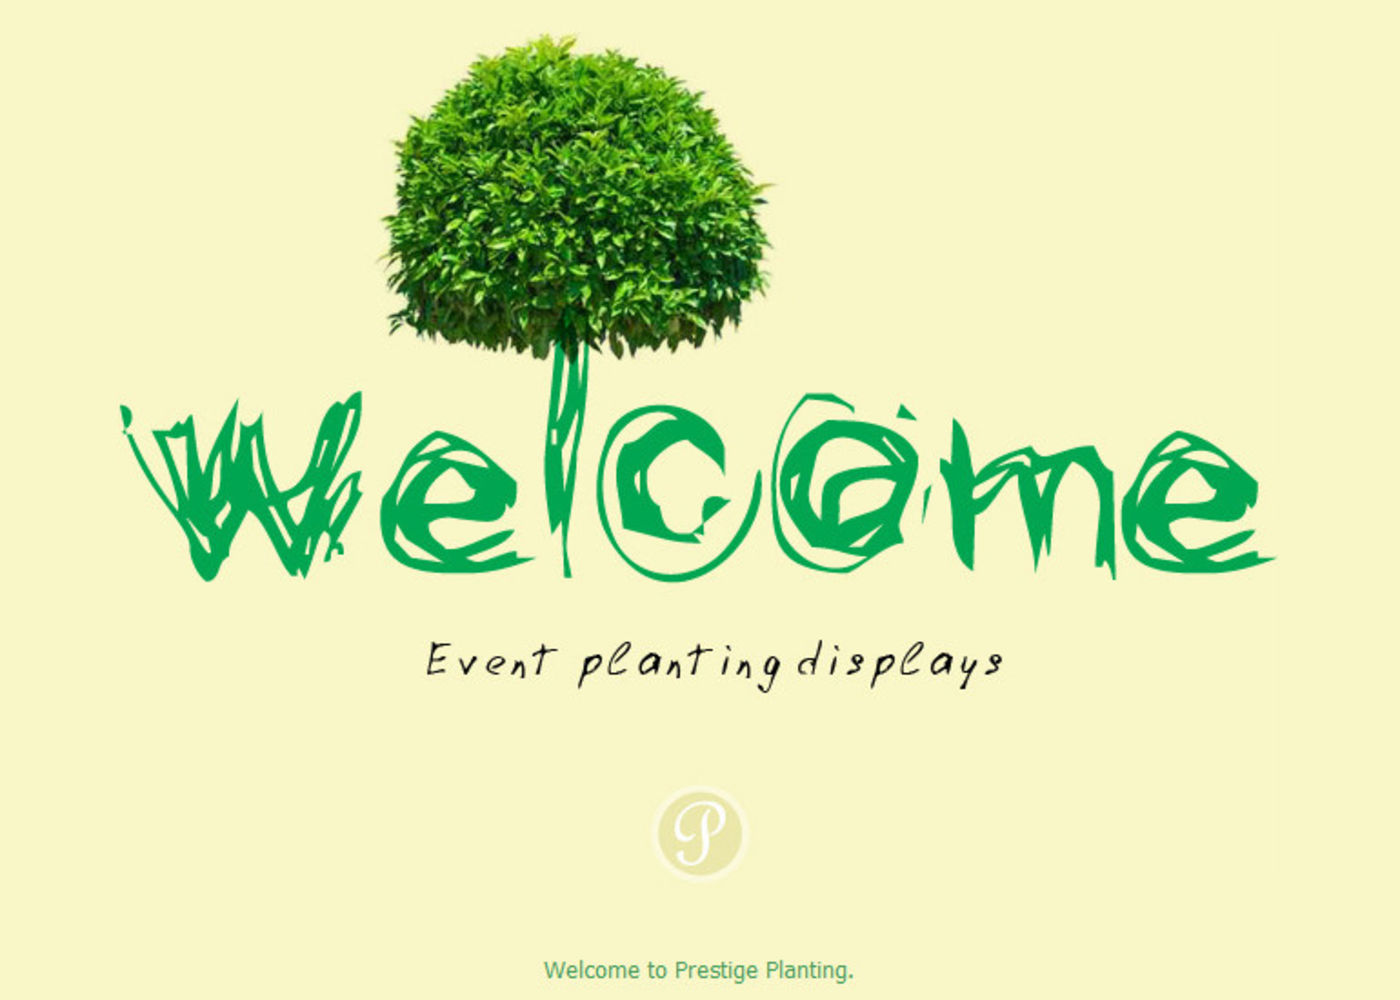 Prestige Planting Welcome